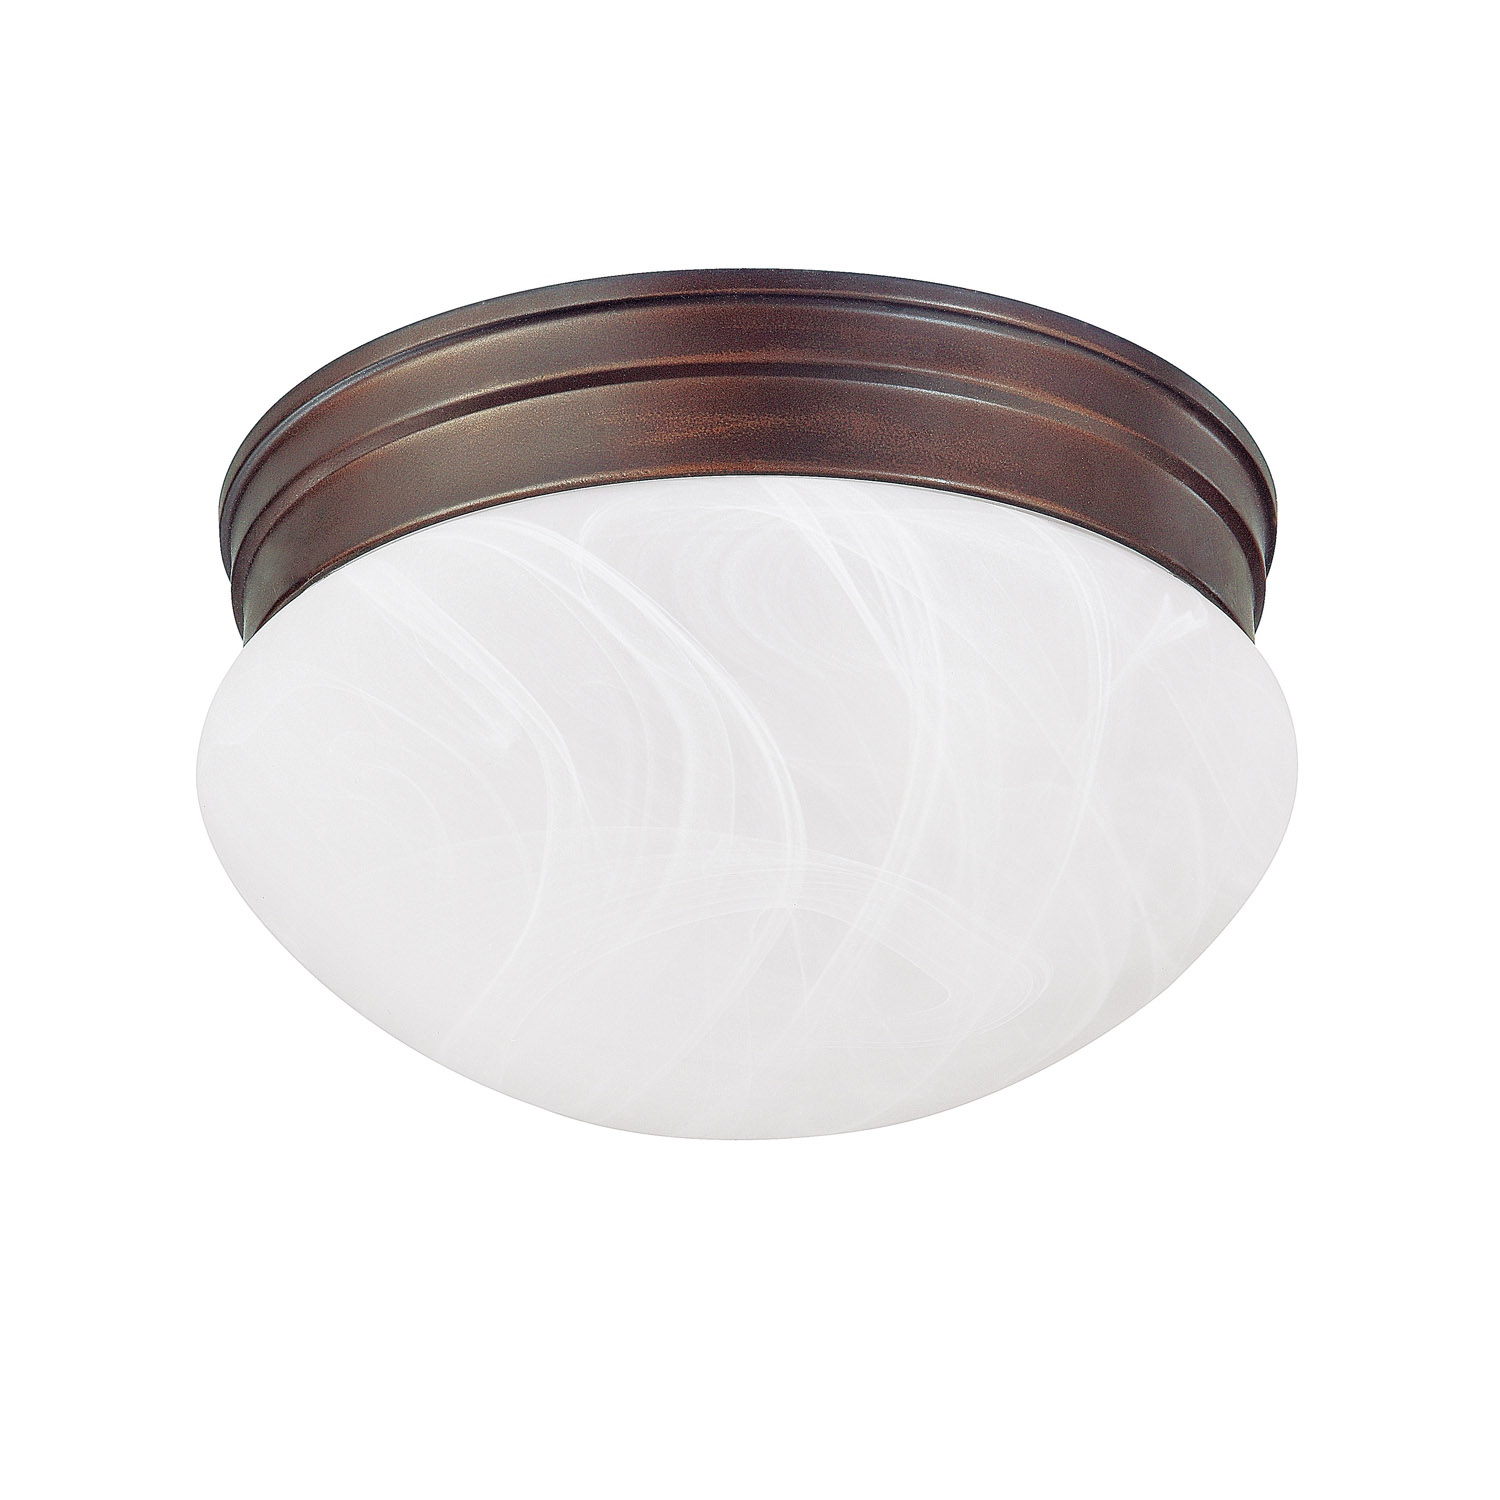 One Light Ceiling Fixture